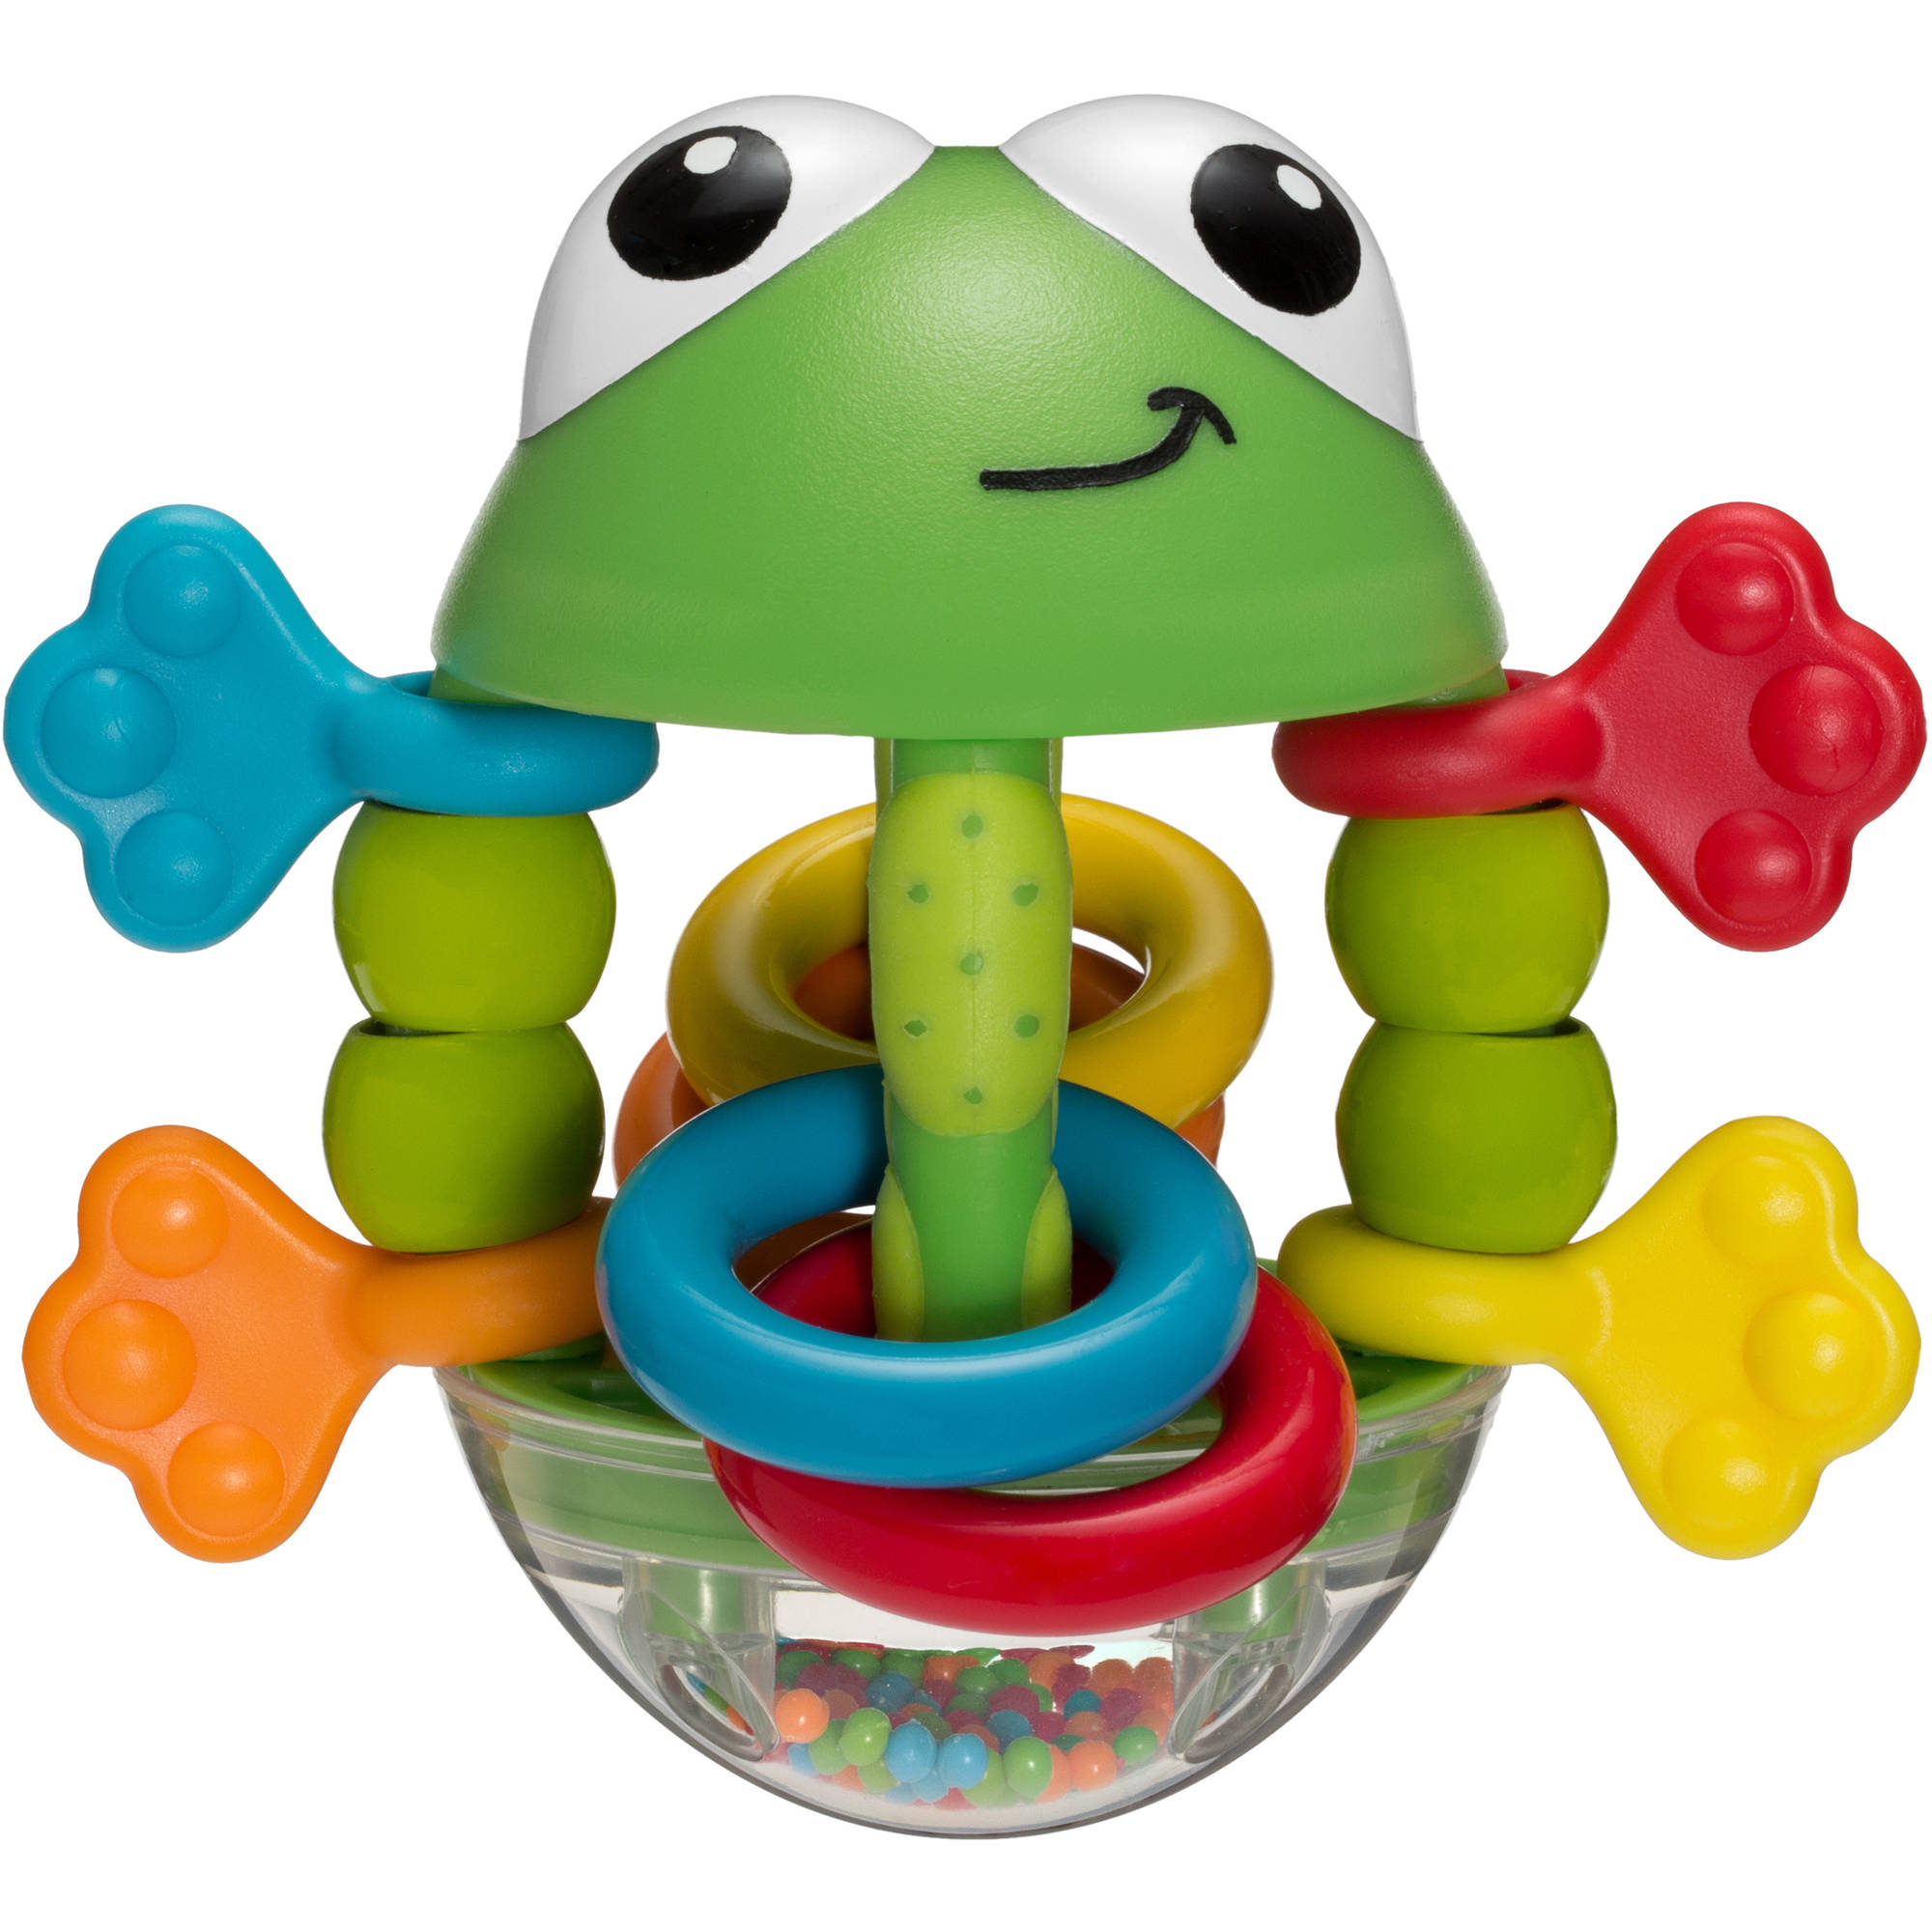 Infantino Topsy Turvy Flip Flop Frog Rattle by Infantino